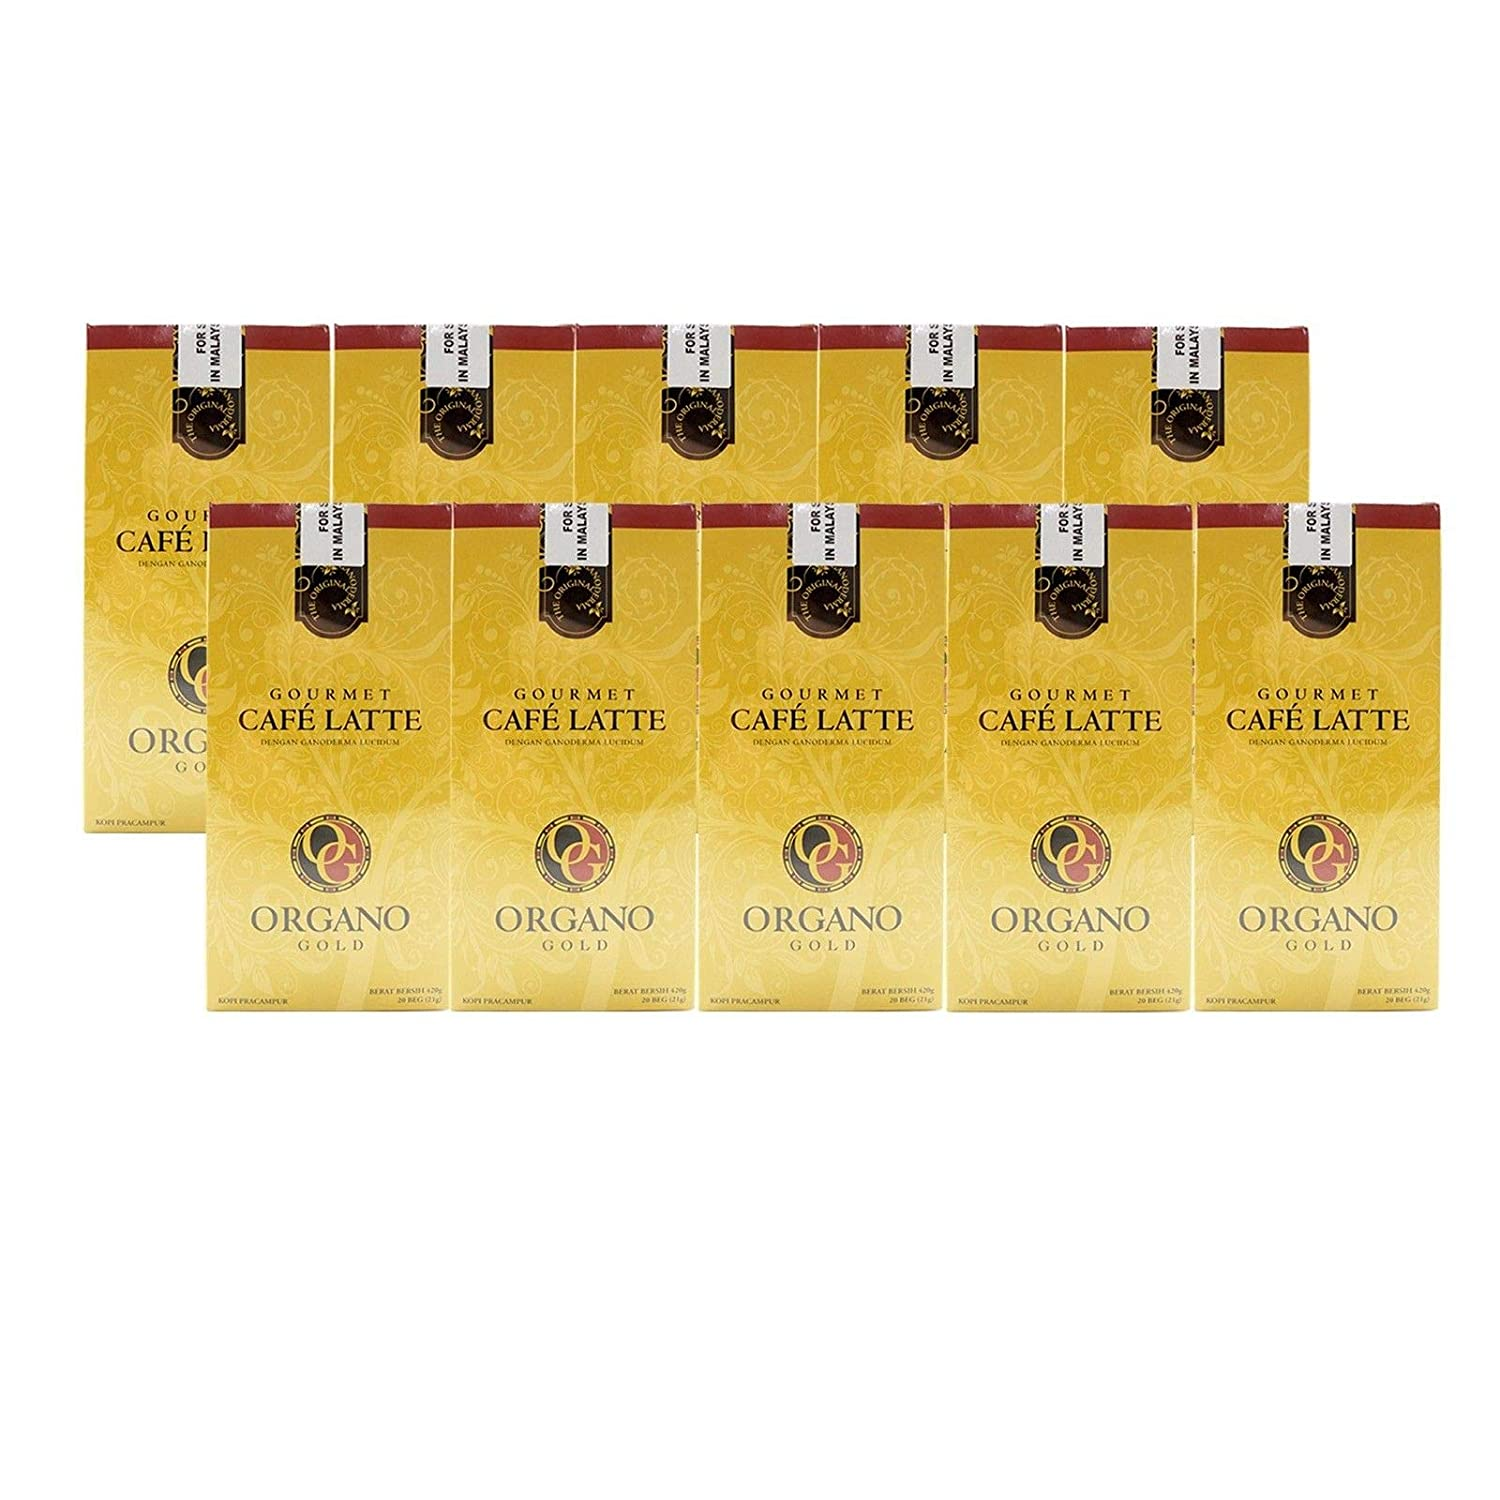 10 Box of Organo Gold Gourmet Portland Mall Latte Max 48% OFF 100% Ganode Certified Coffee